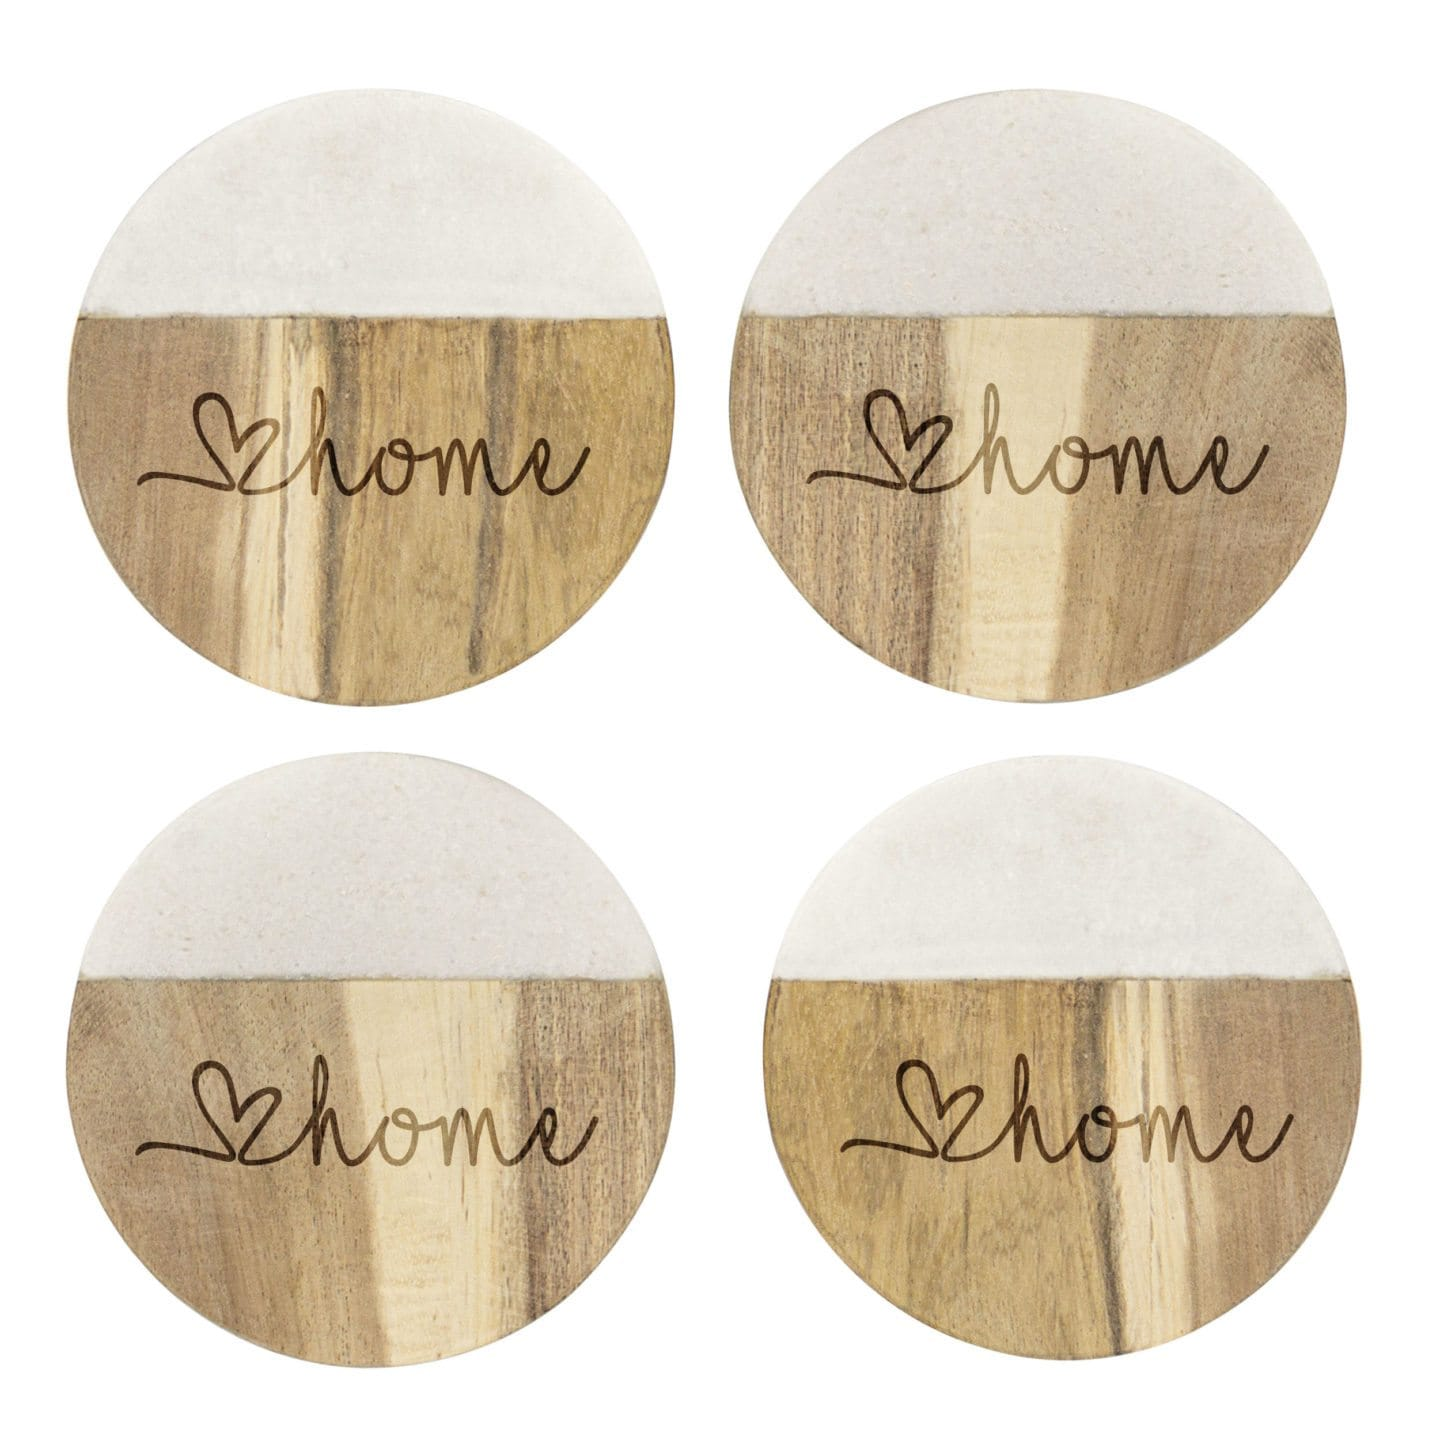 woodgrain coasters on white background stocking stuffer ideas for adults